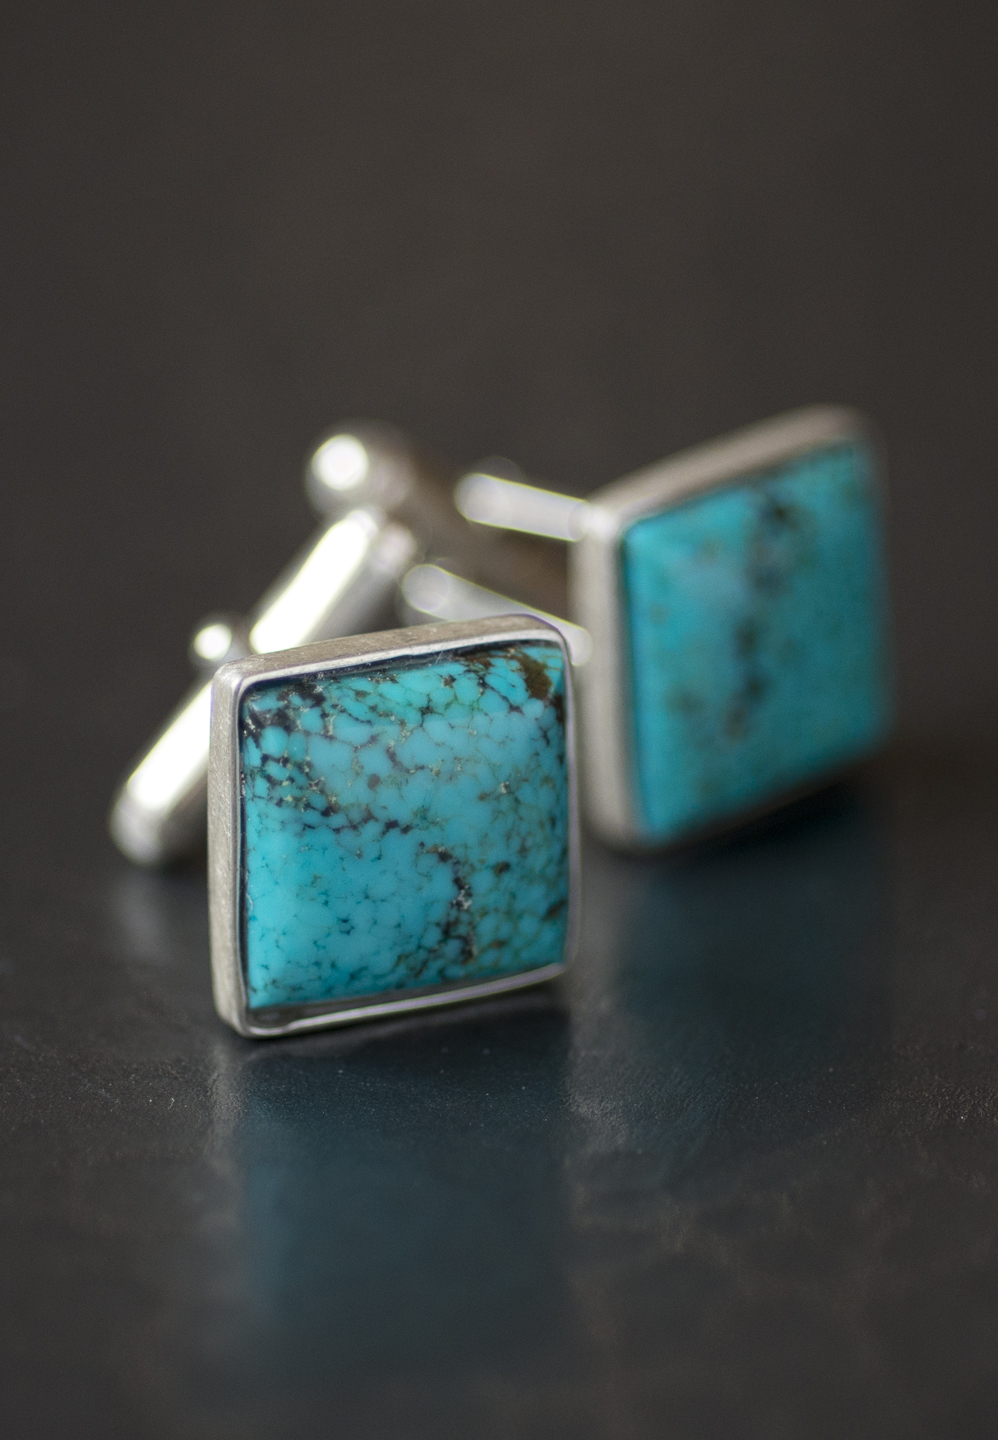 handcrafted turquoise cufflinks in sterling silver